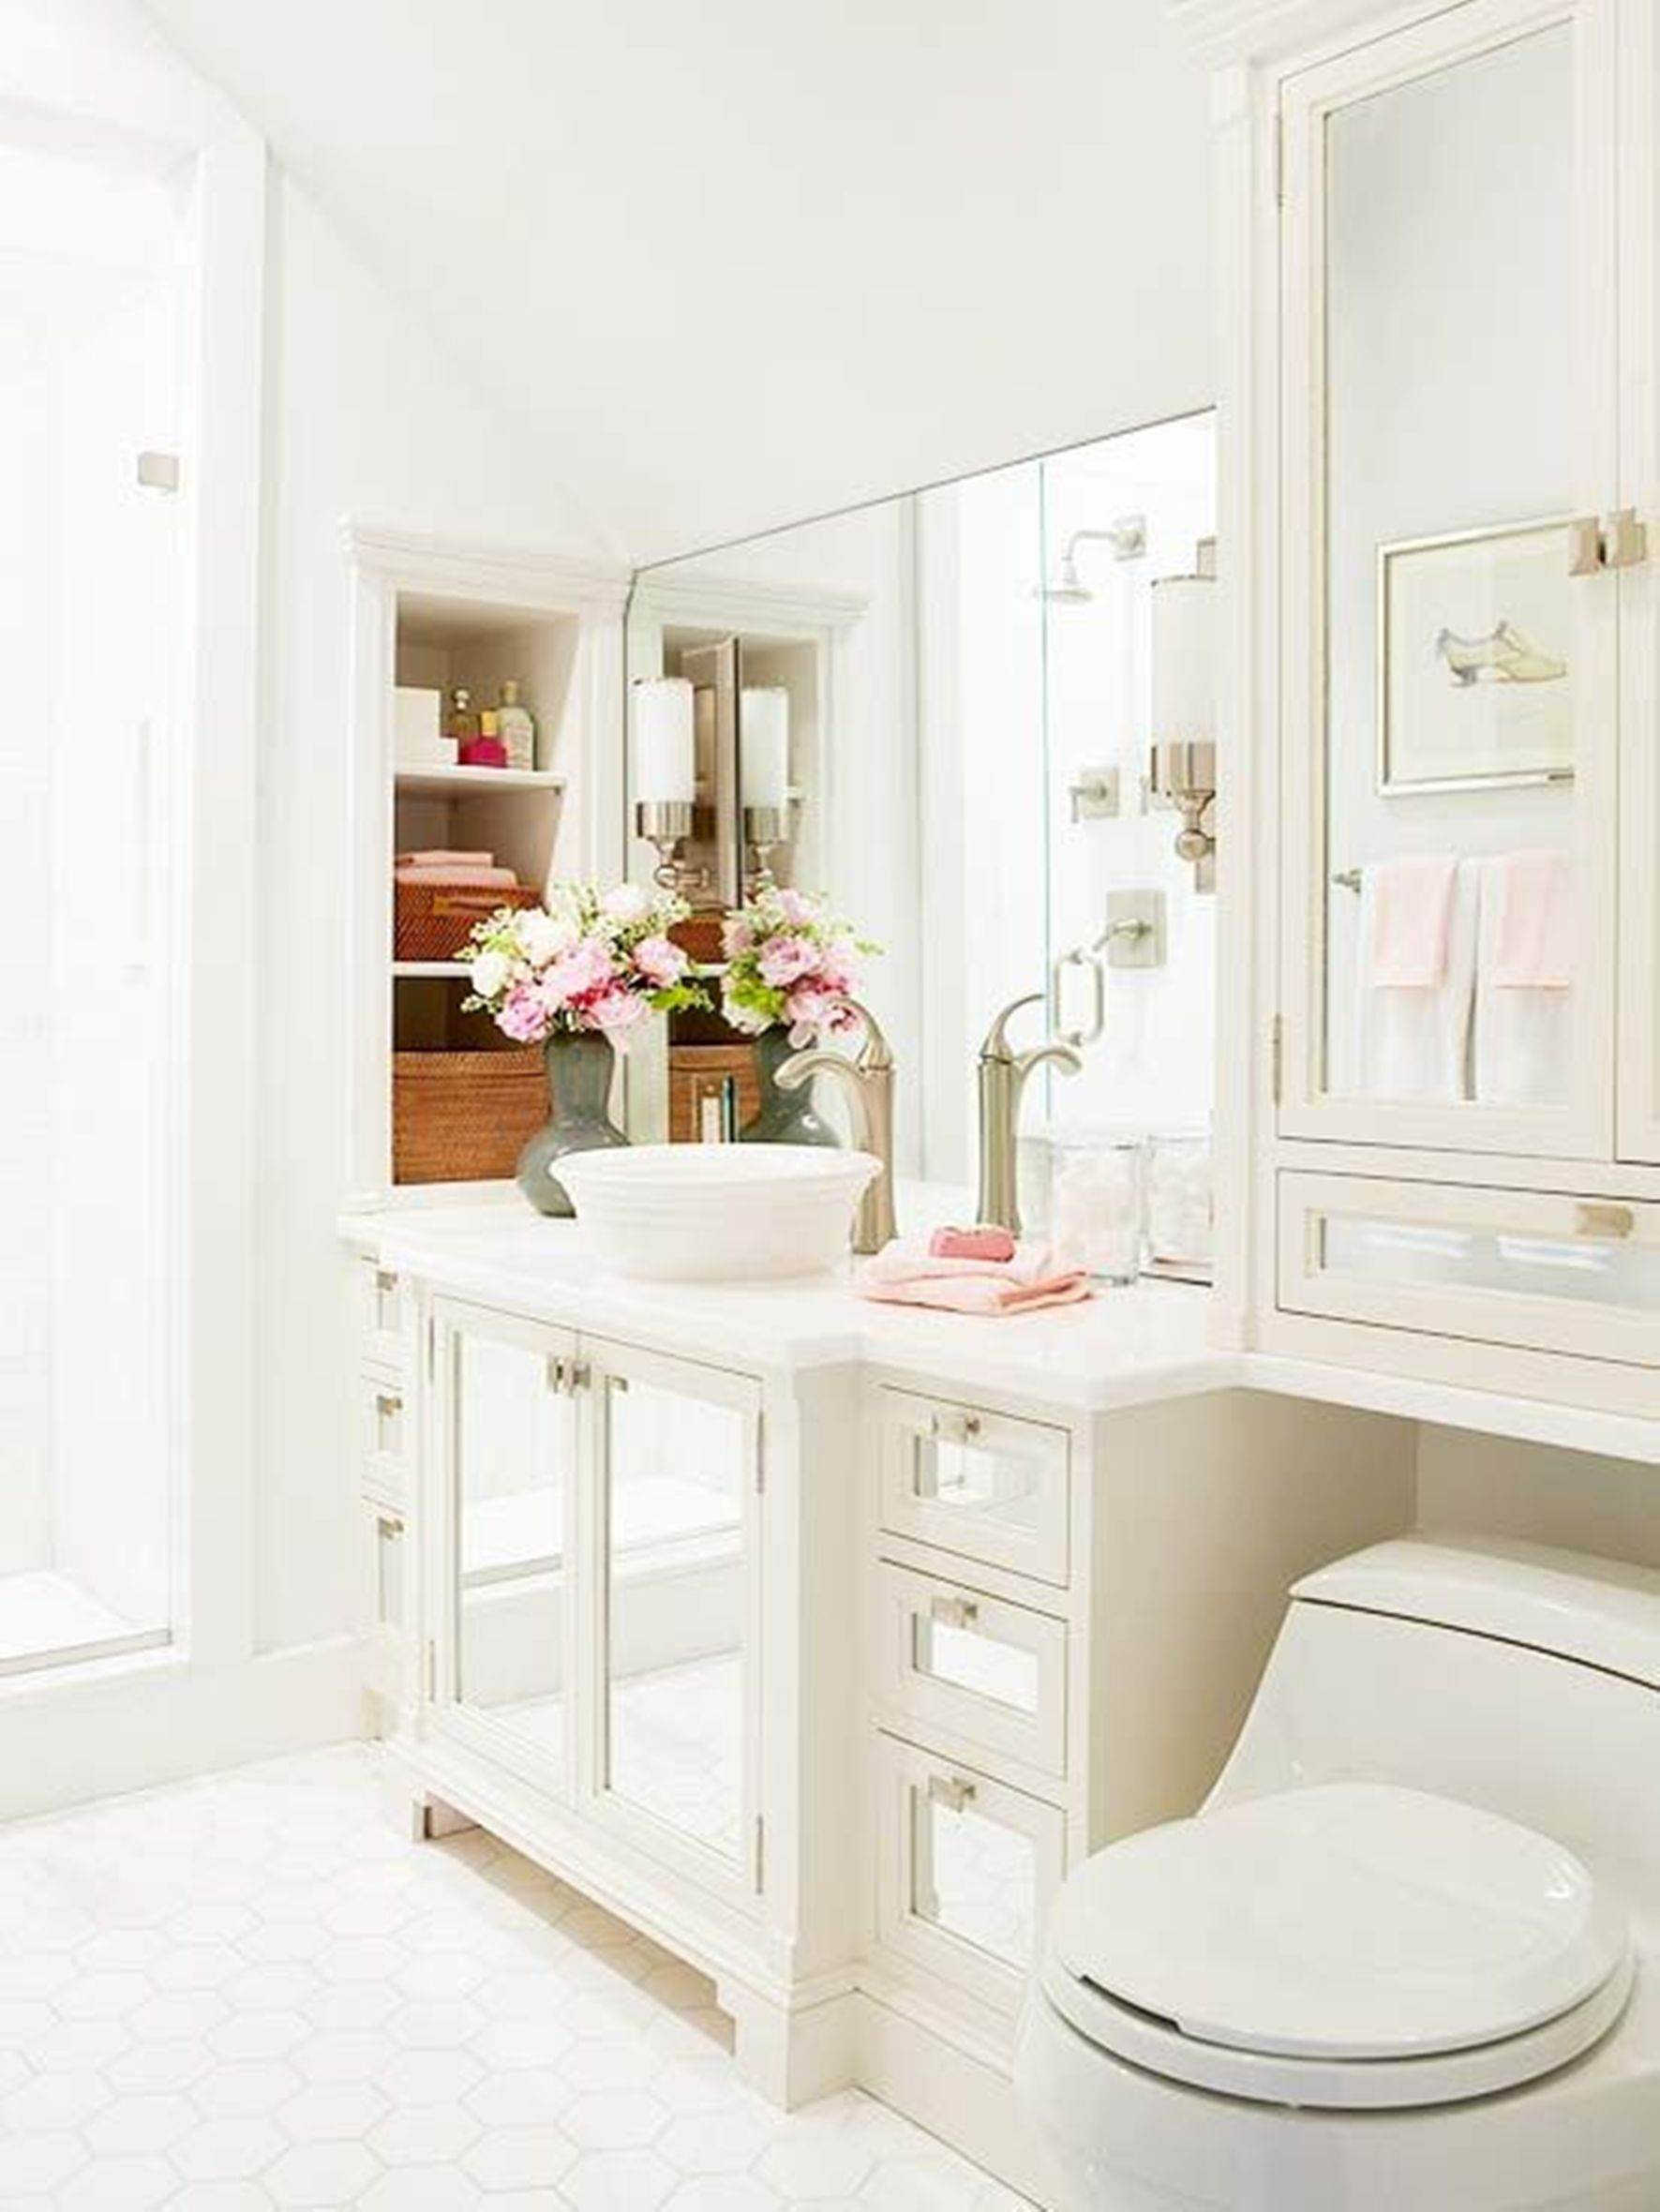 Sublime Interior Bathroom Using White Cabinet and Mirror also Toilet